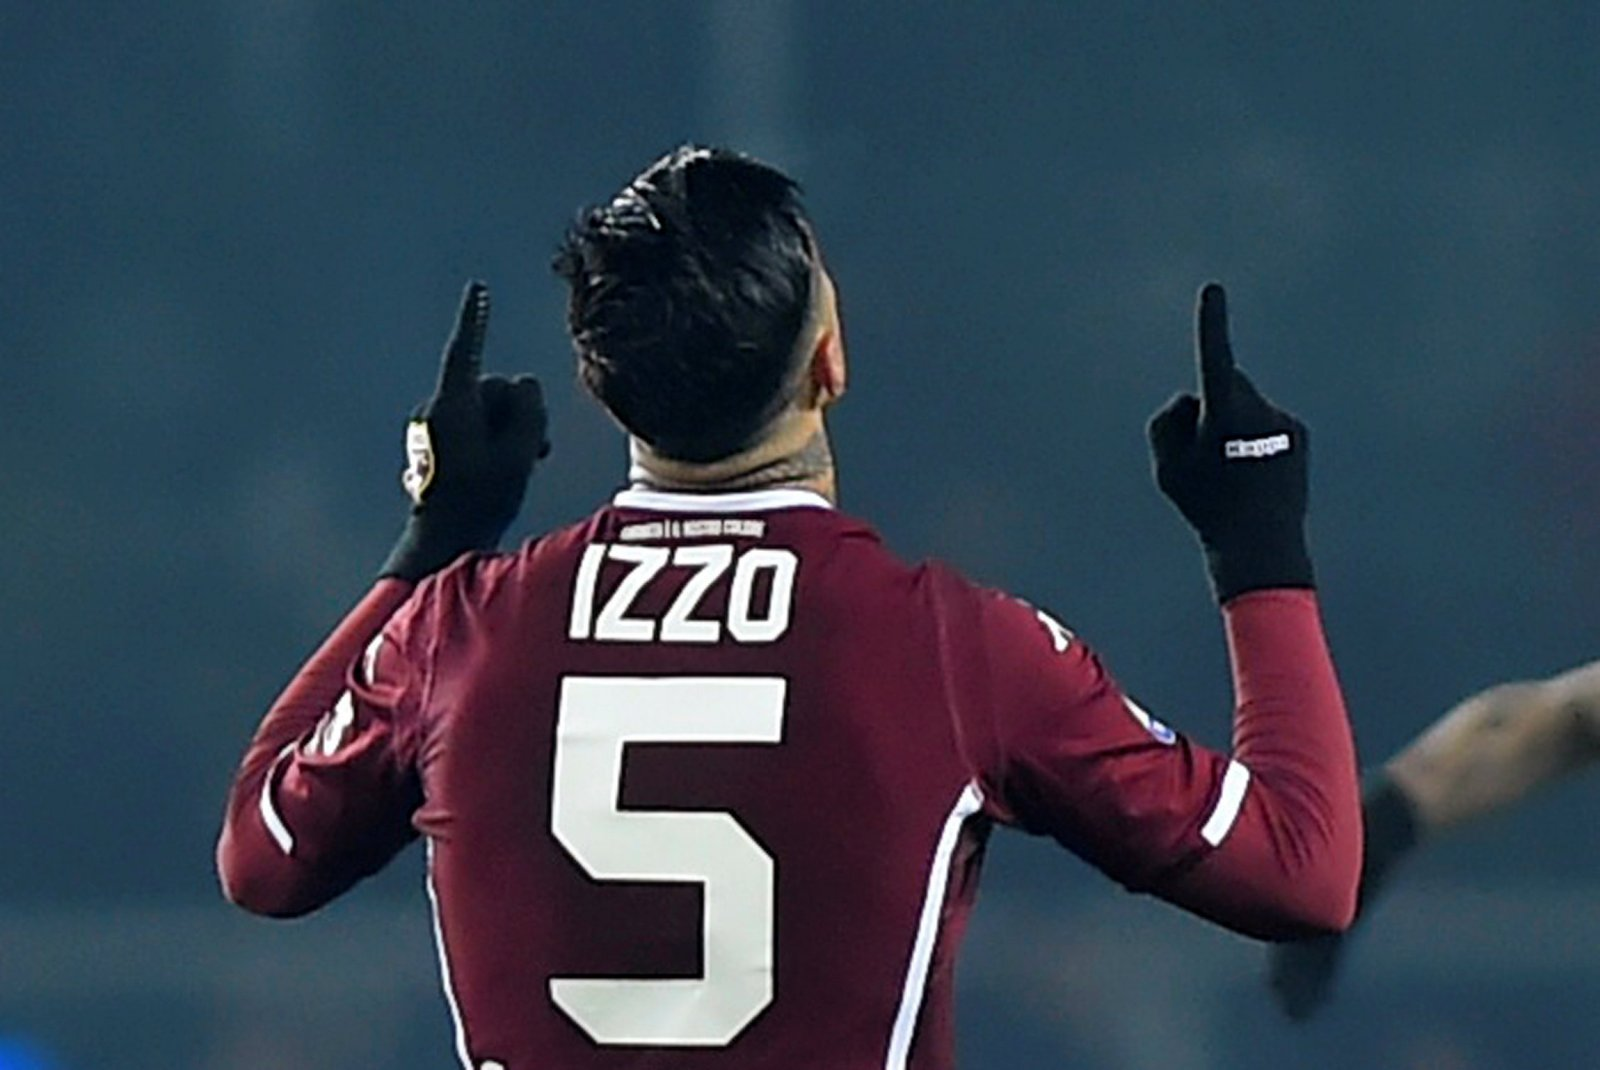 Arsenal: Armando Izzo is the perfect short-term defensive signing for Gunners